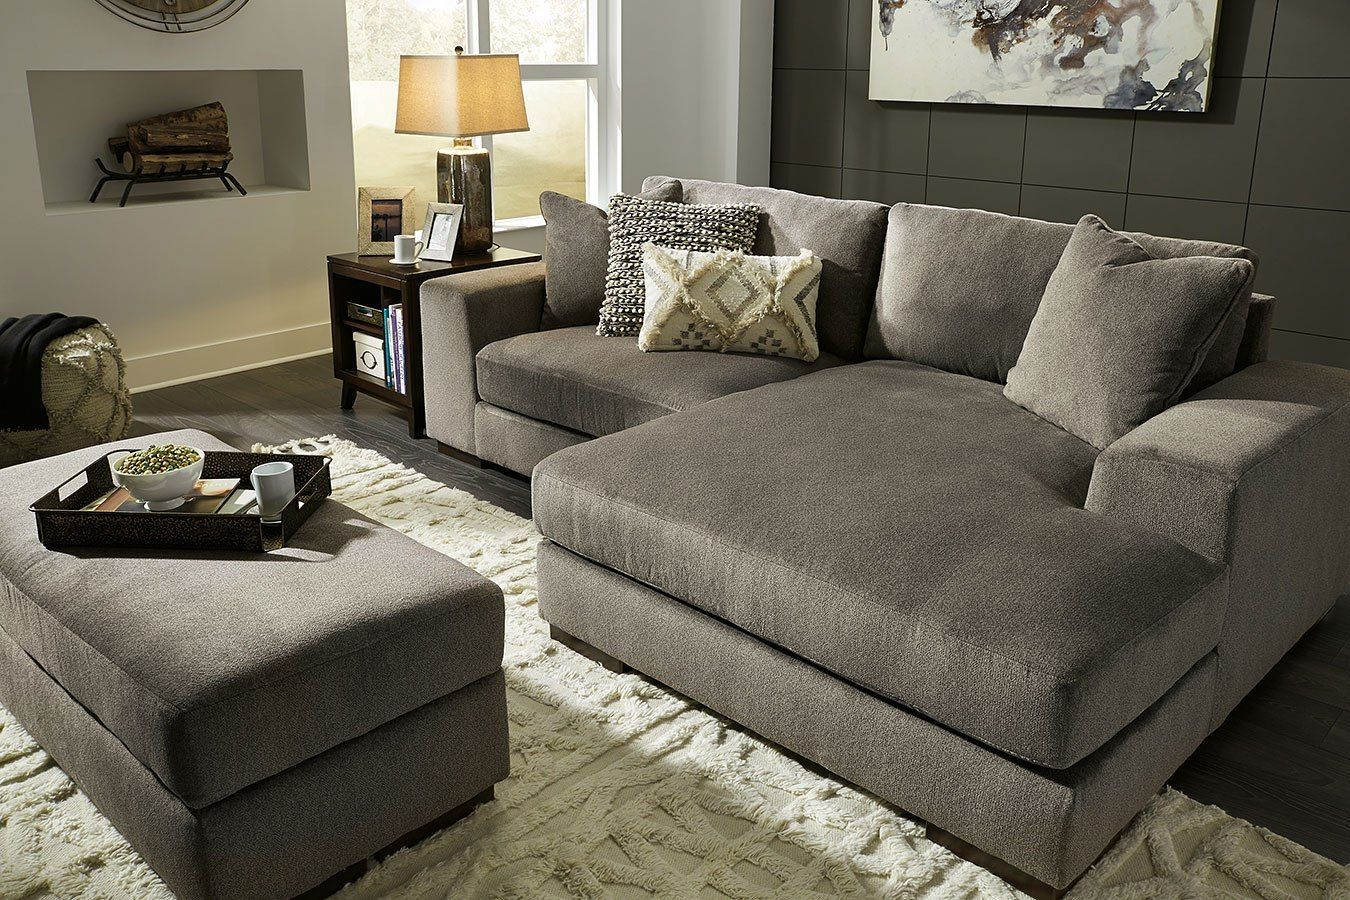 Manzani Graphite Sectional Living Room Set Signature Design In Living Room Sets The Manzani Sectional Living Room Sets Living Room Sets Living Room Sectional